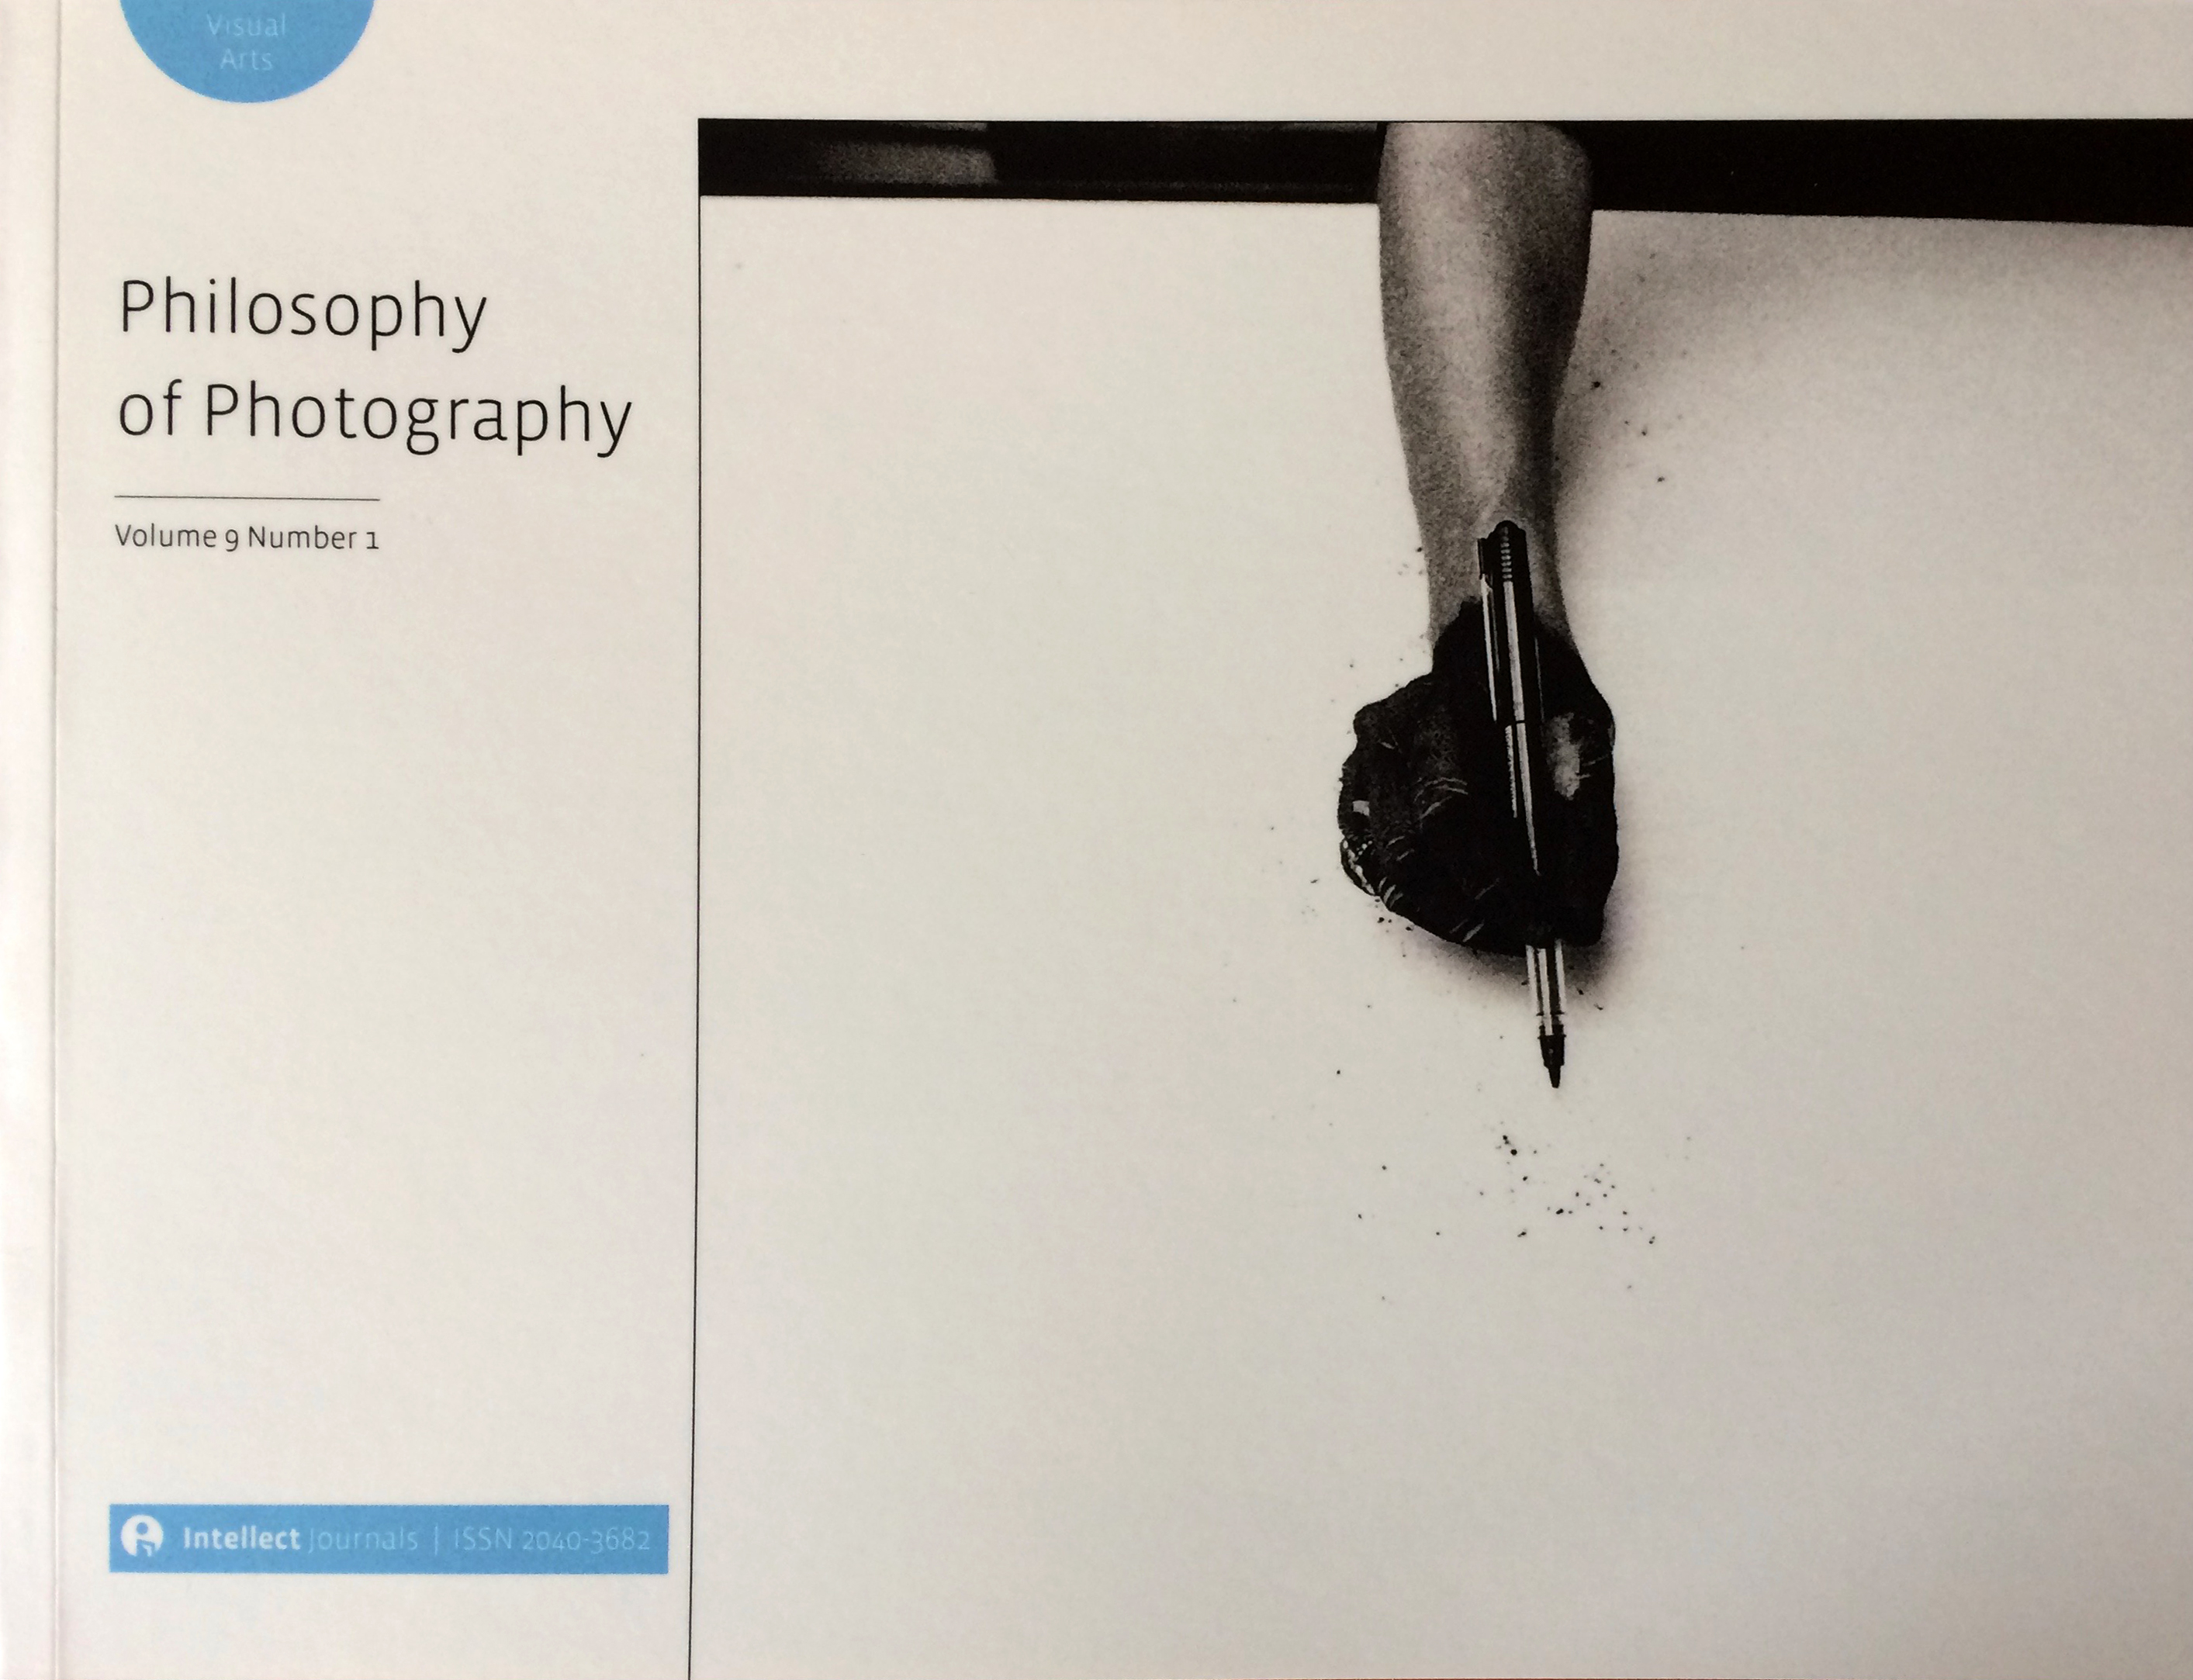 Philosophy of Photography 9.1